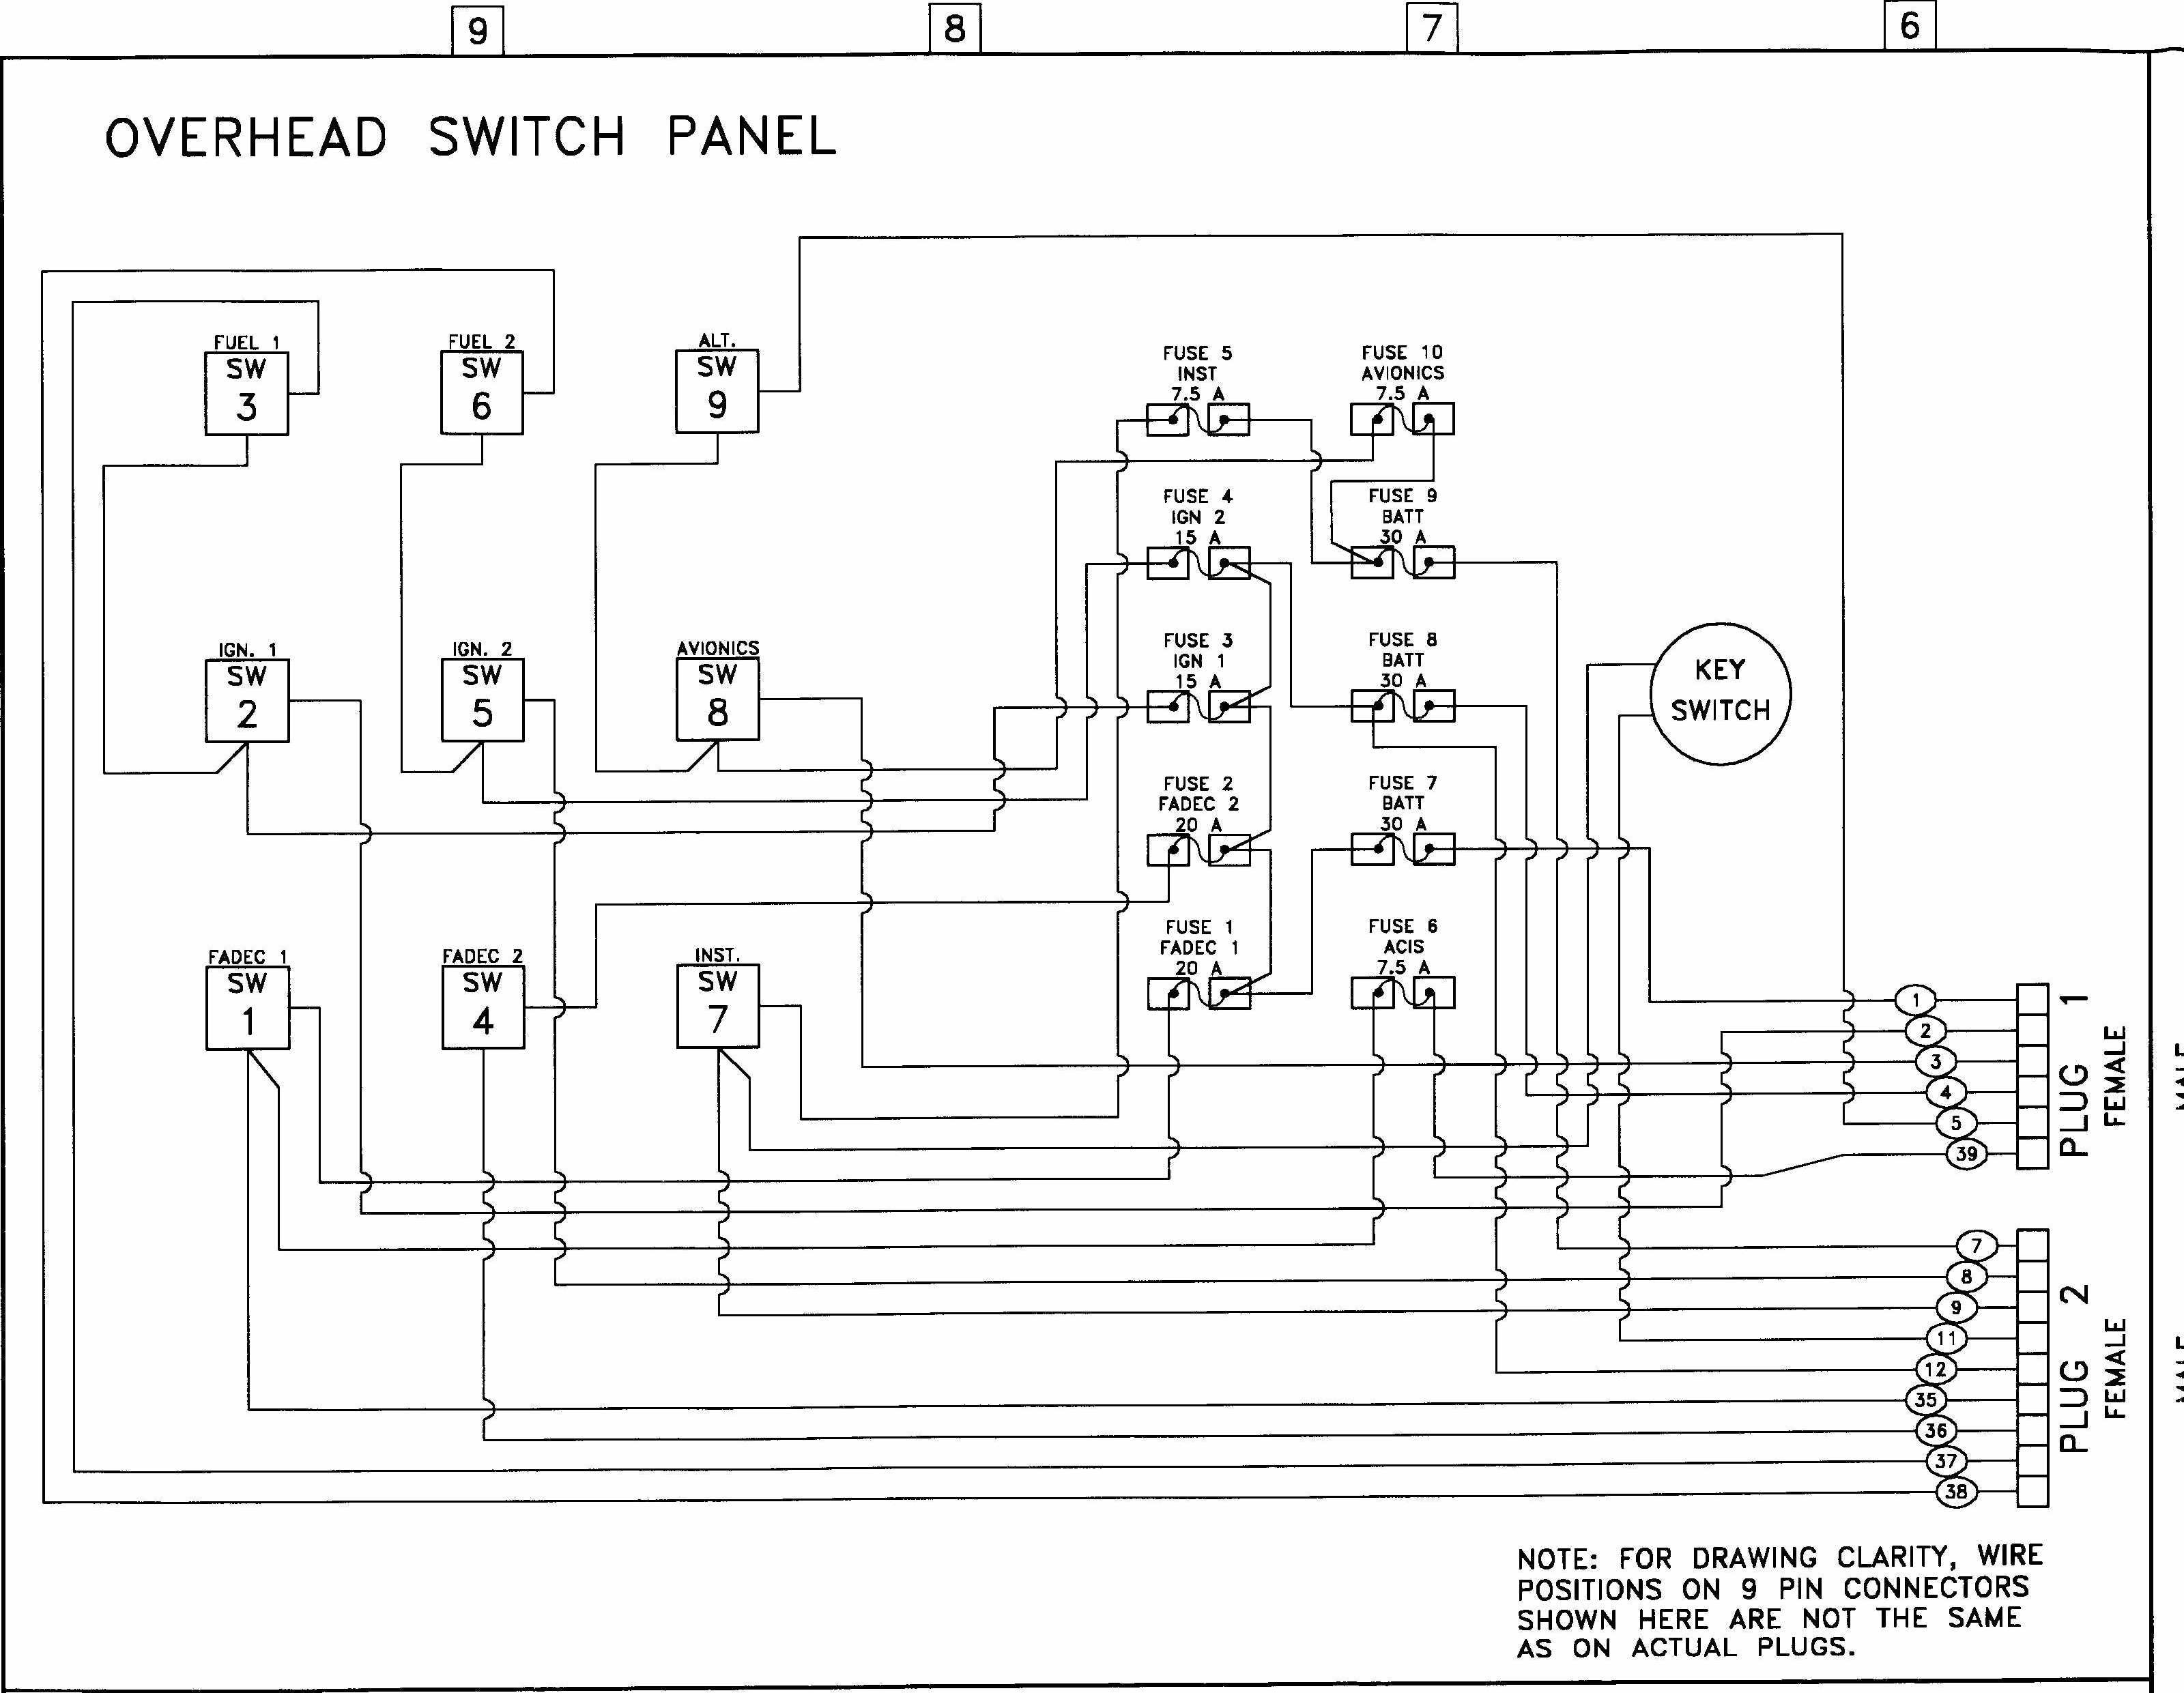 jumper cable diagram electrical work wiring diagram u2022 rh wiringdiagramshop today jumper cable connections Car Jumper Cables